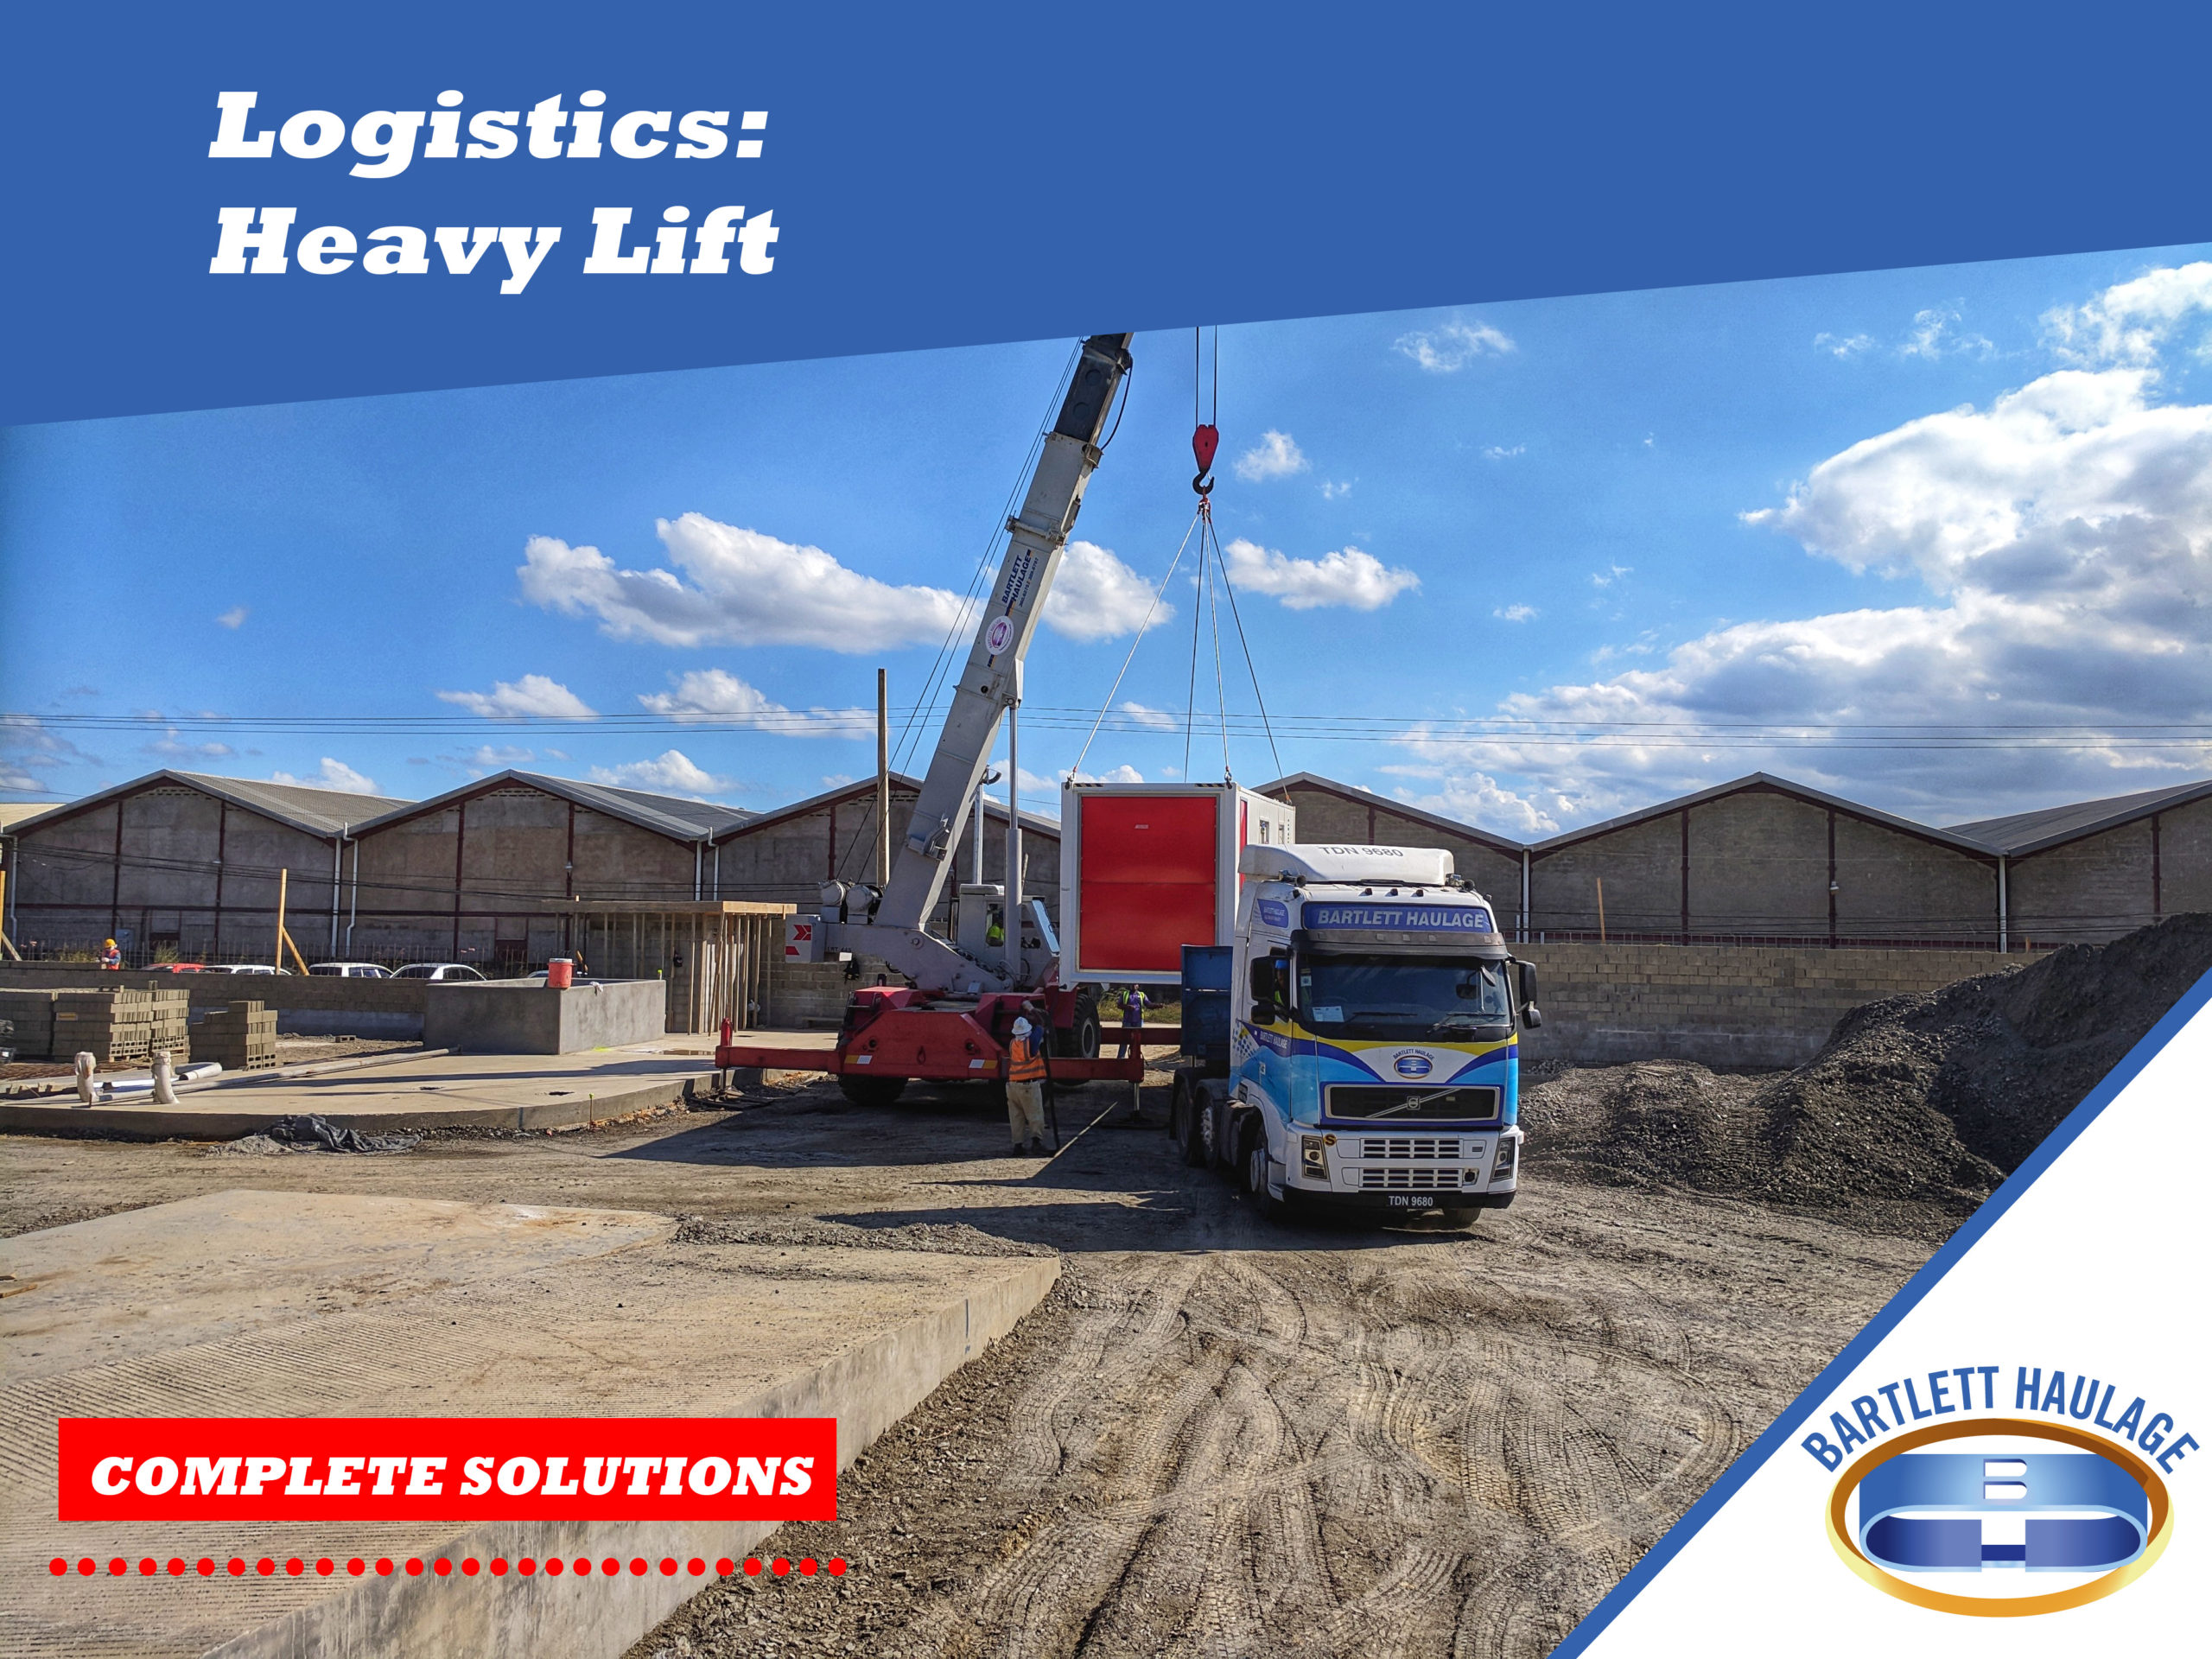 NEW-ADVERTISEMENT-PICTURE-HEAVY-LIFT-BEST--scaled